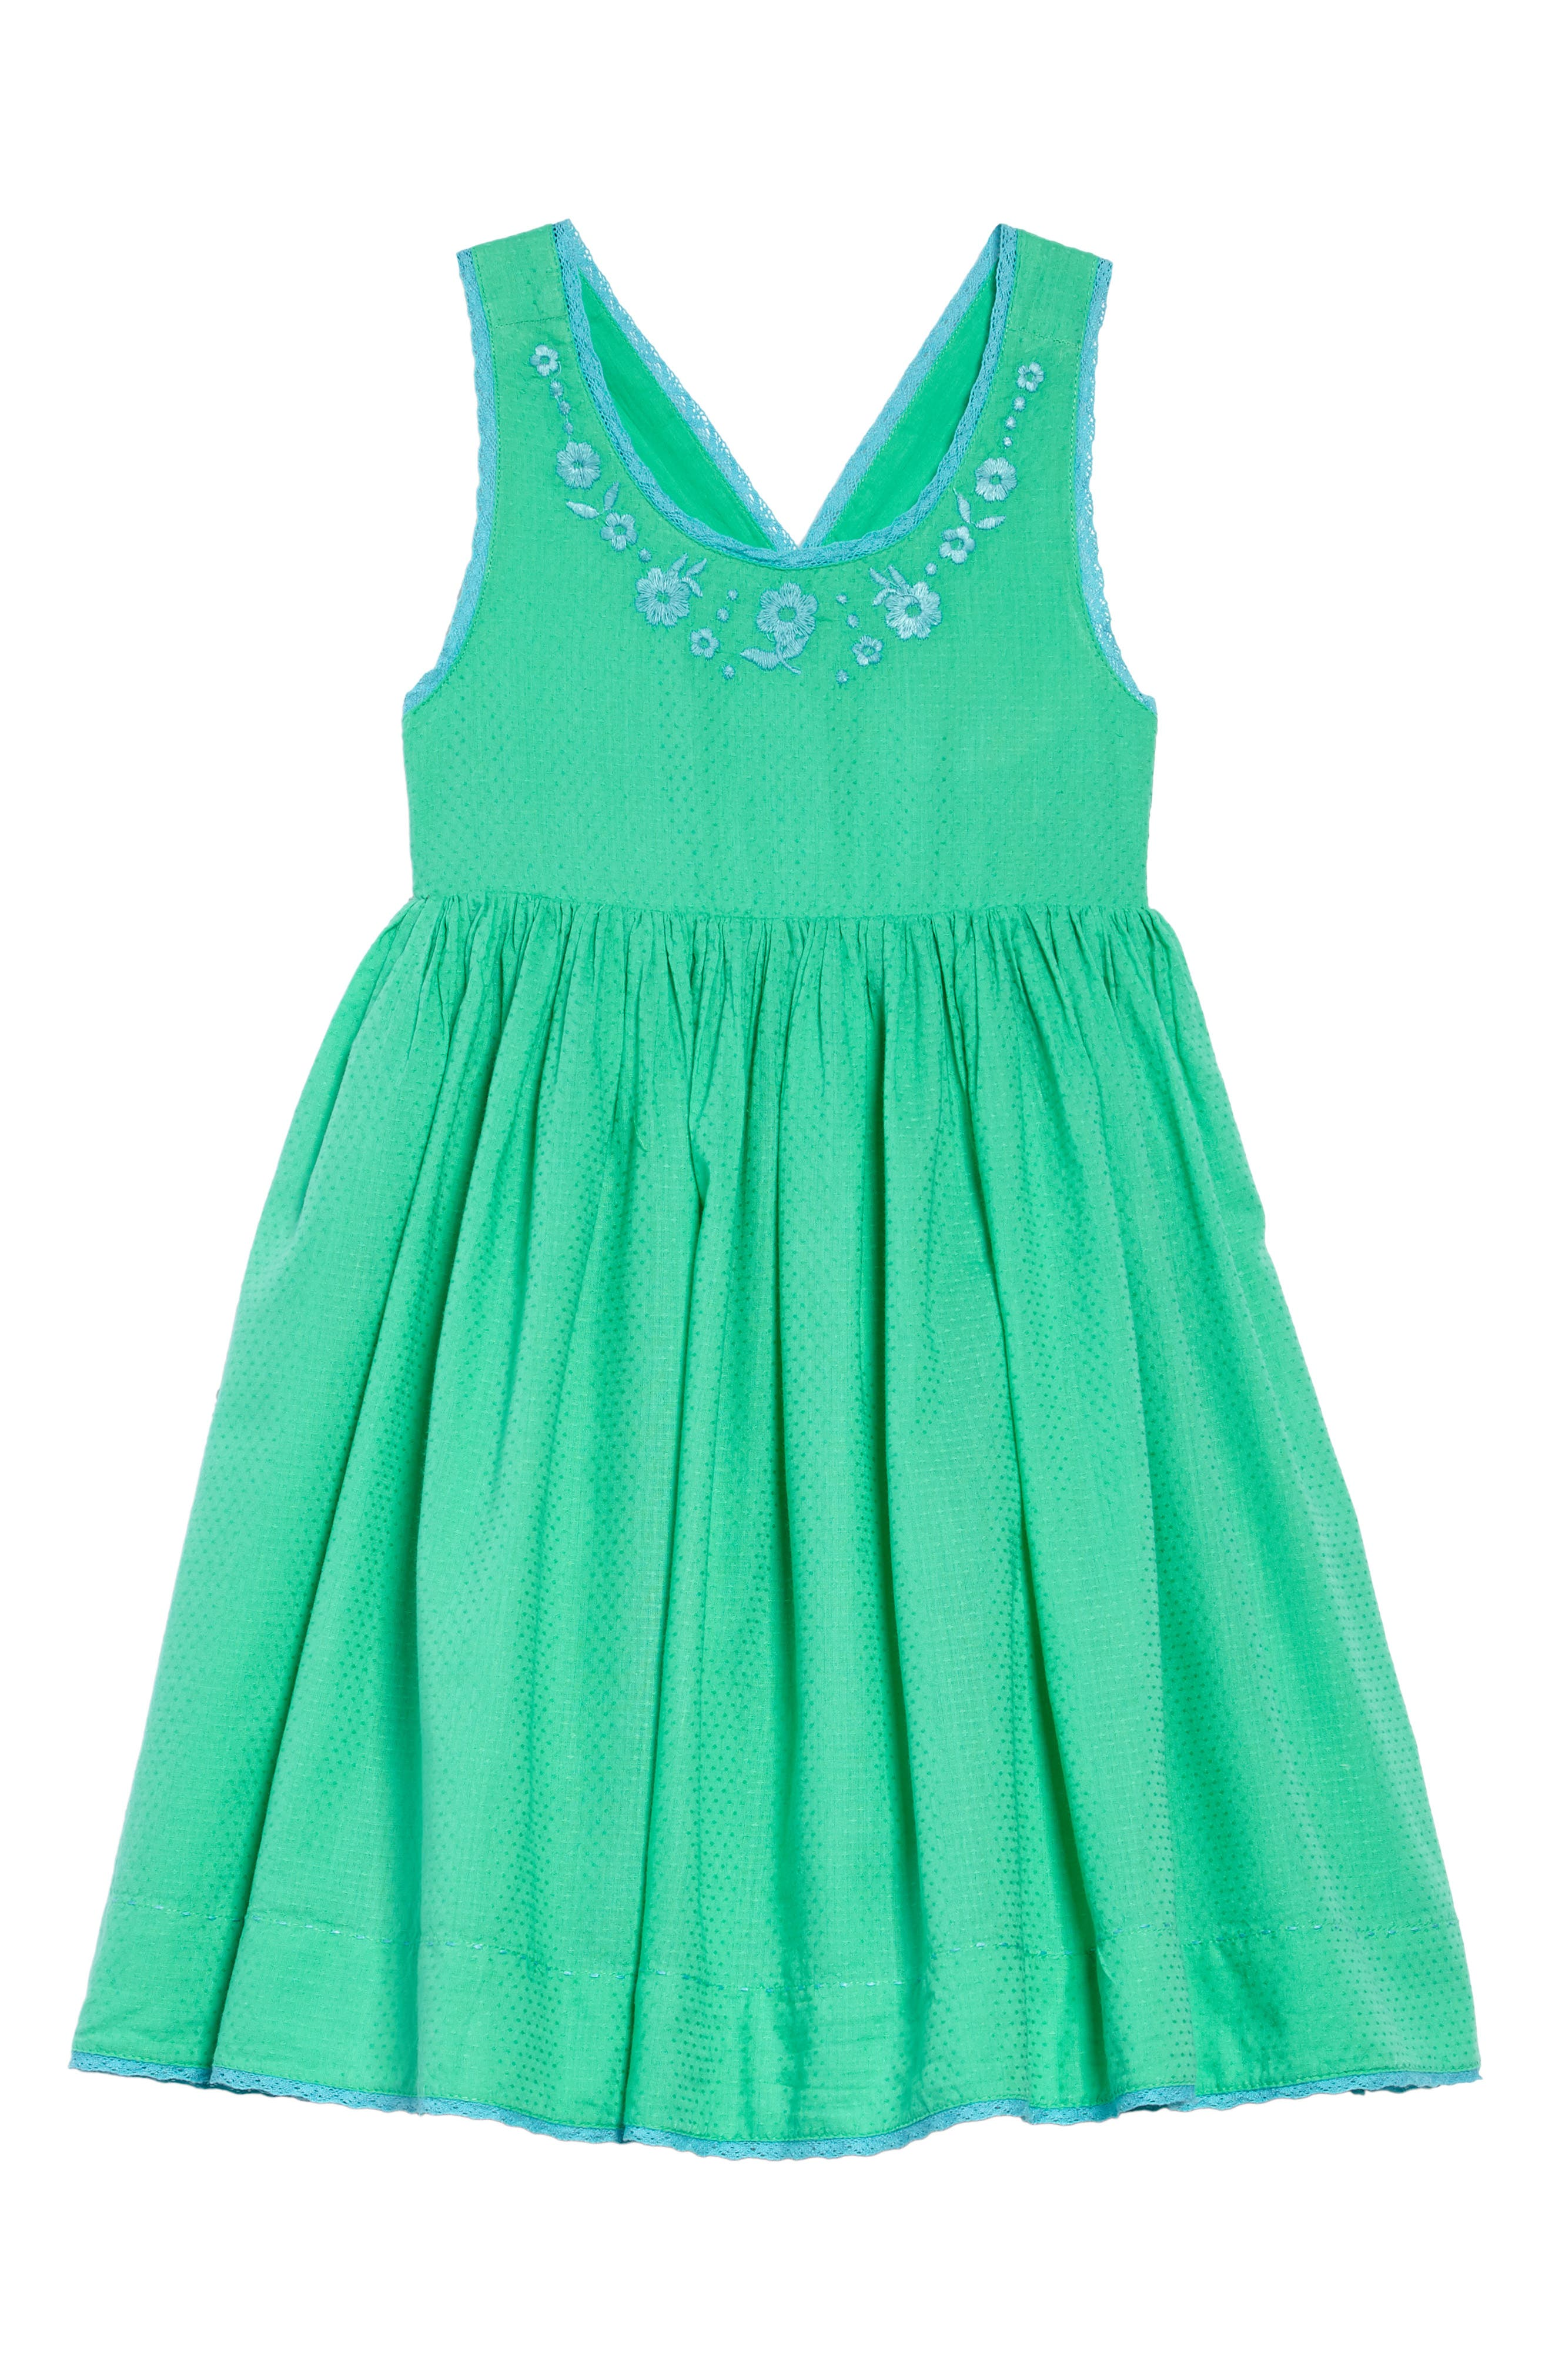 Embroidered Dress,                         Main,                         color, 315